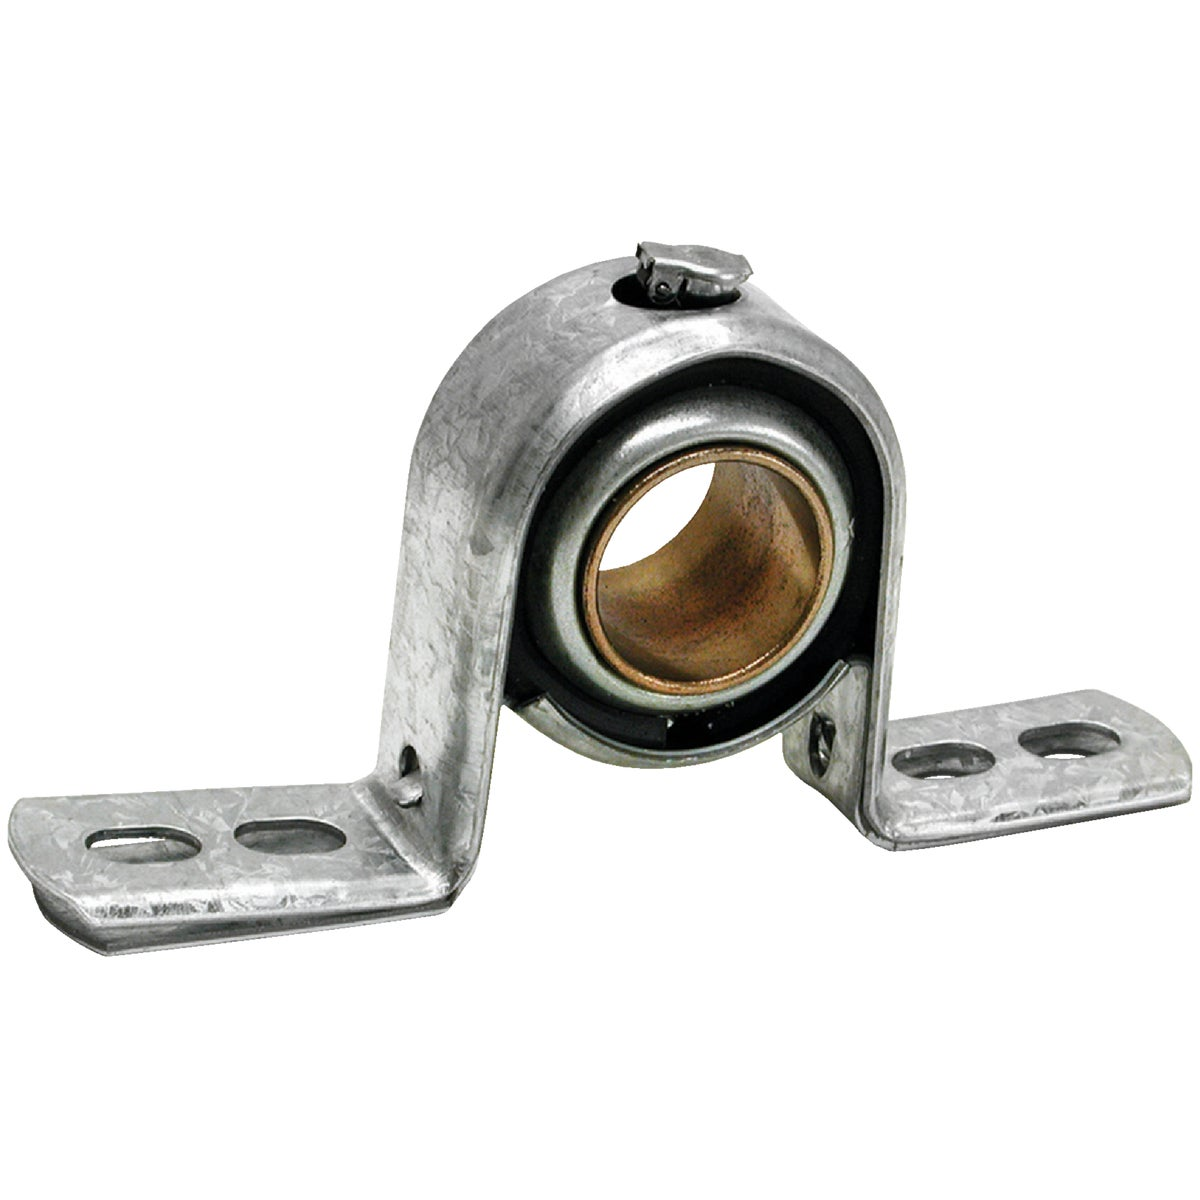 "1"" HIGH PILLOW BLOCK - 6656 by Dial Manufacturing"